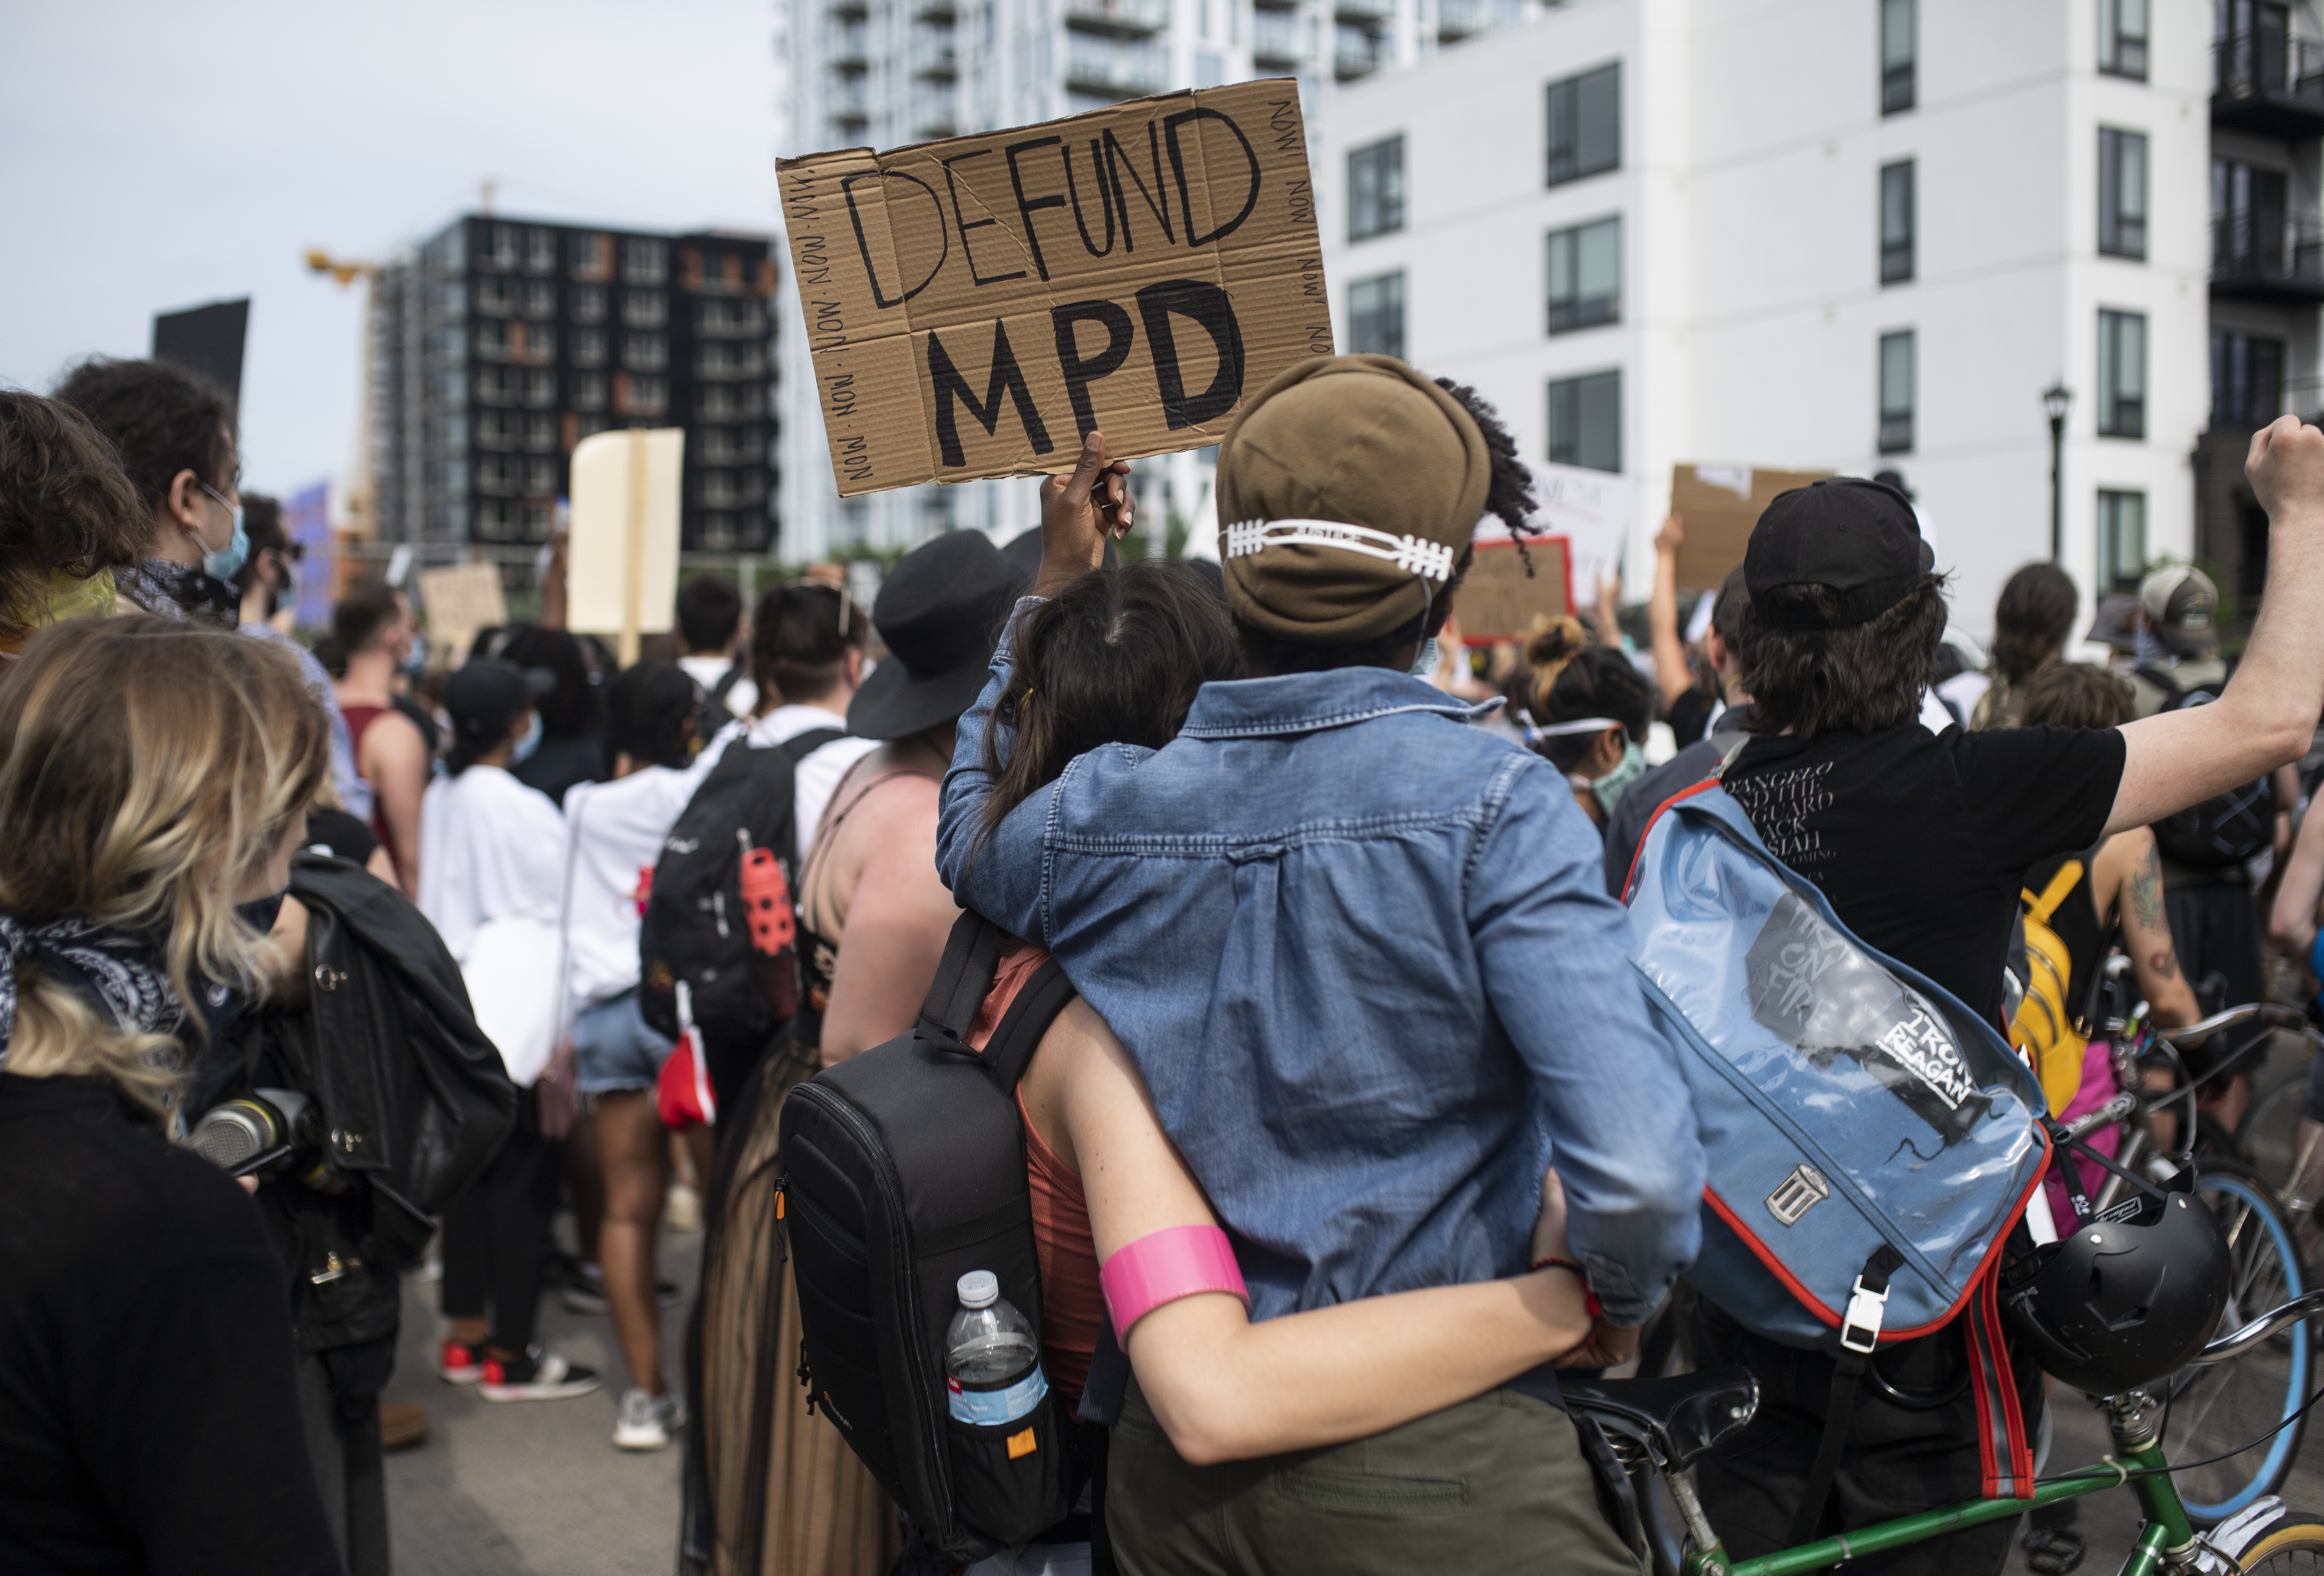 MINNEAPOLIS, MN - JUNE 6: Demonstrators calling to defund the Minneapolis Police Department march on University Avenue on June 6, 2020 in Minneapolis, Minnesota. The march, organized by the Black Visions Collective, commemorated the life of George Floyd who was killed by members of the MPD on May 25. (Photo by Stephen Maturen/Getty Images)